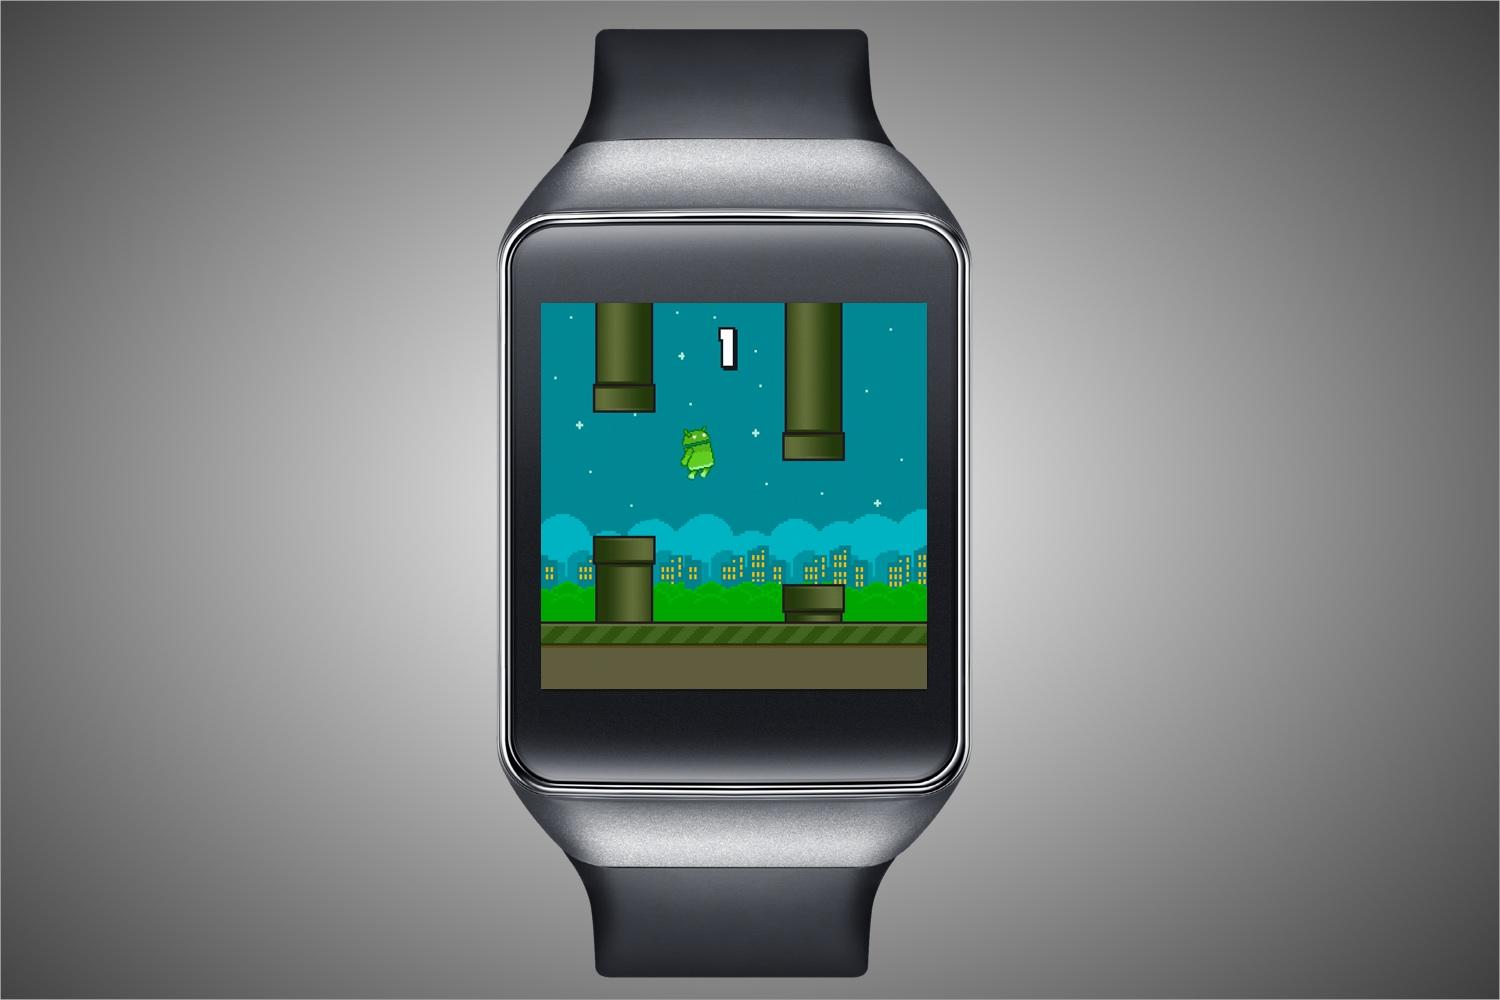 Flappy Bird Clone First Game on Android Wear